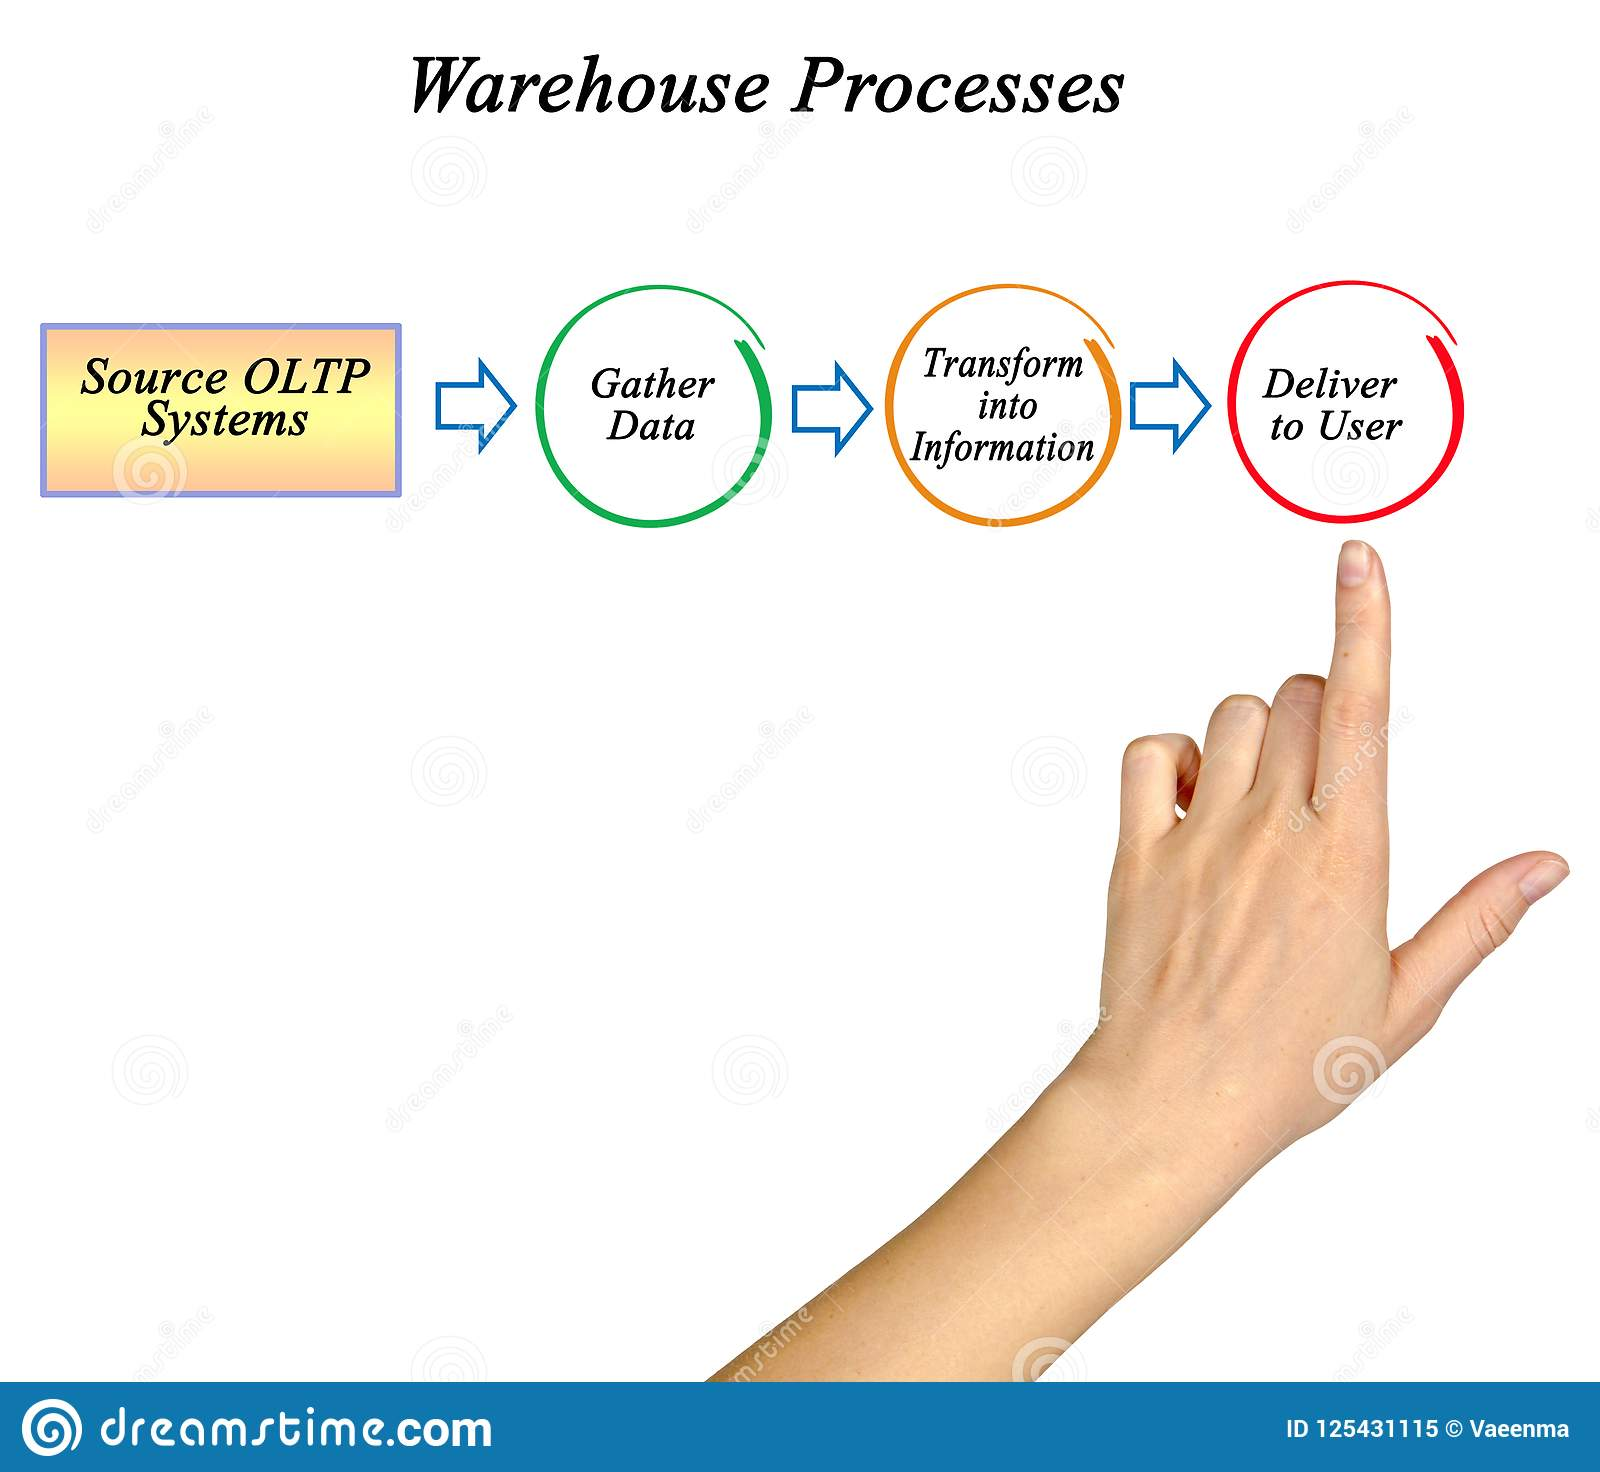 Warehouse information processes